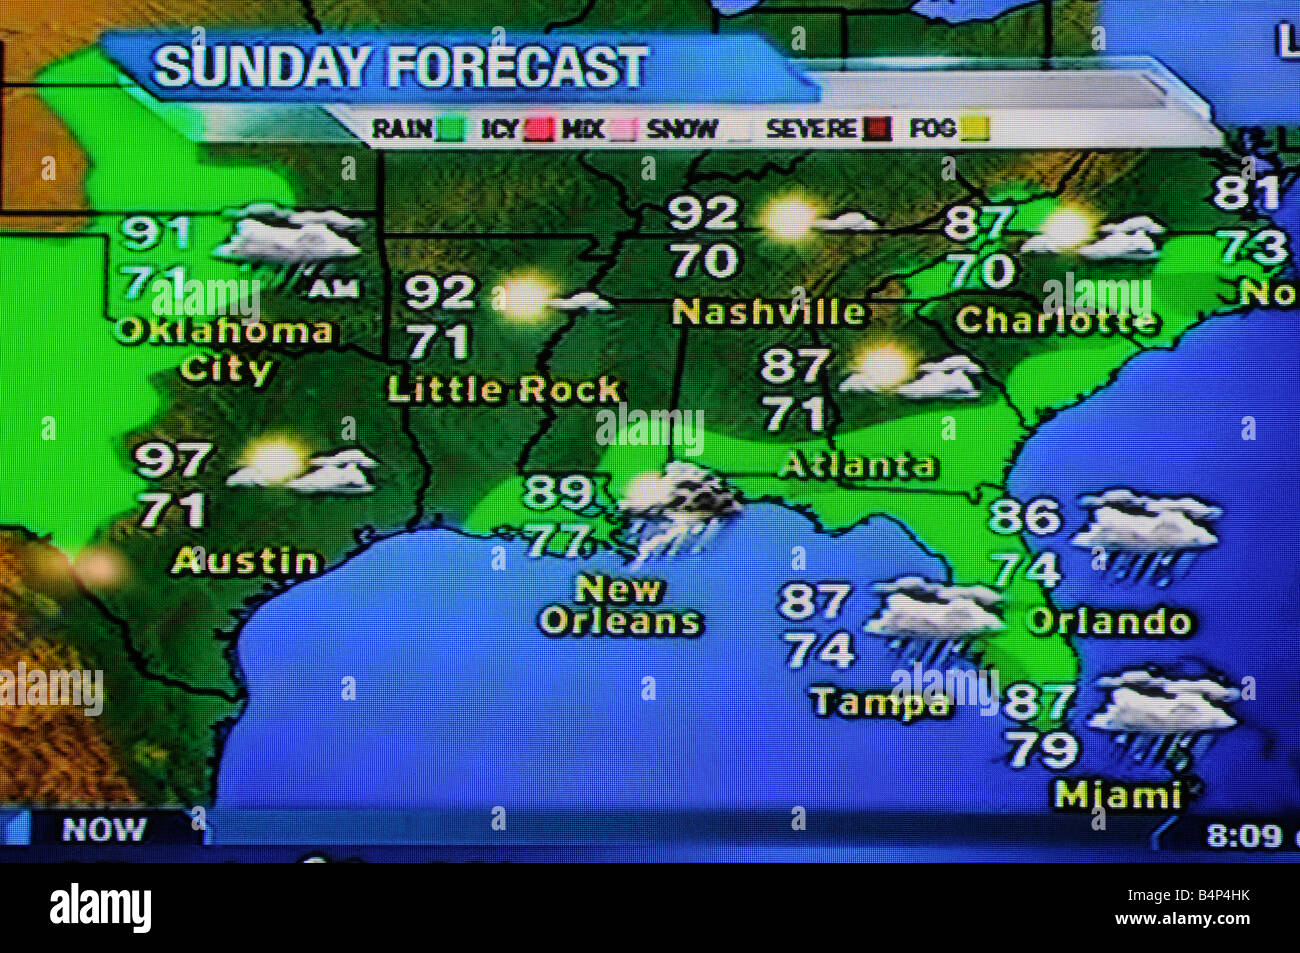 Orlando Weather Map satellite weather map as viewed on the Interand on TV